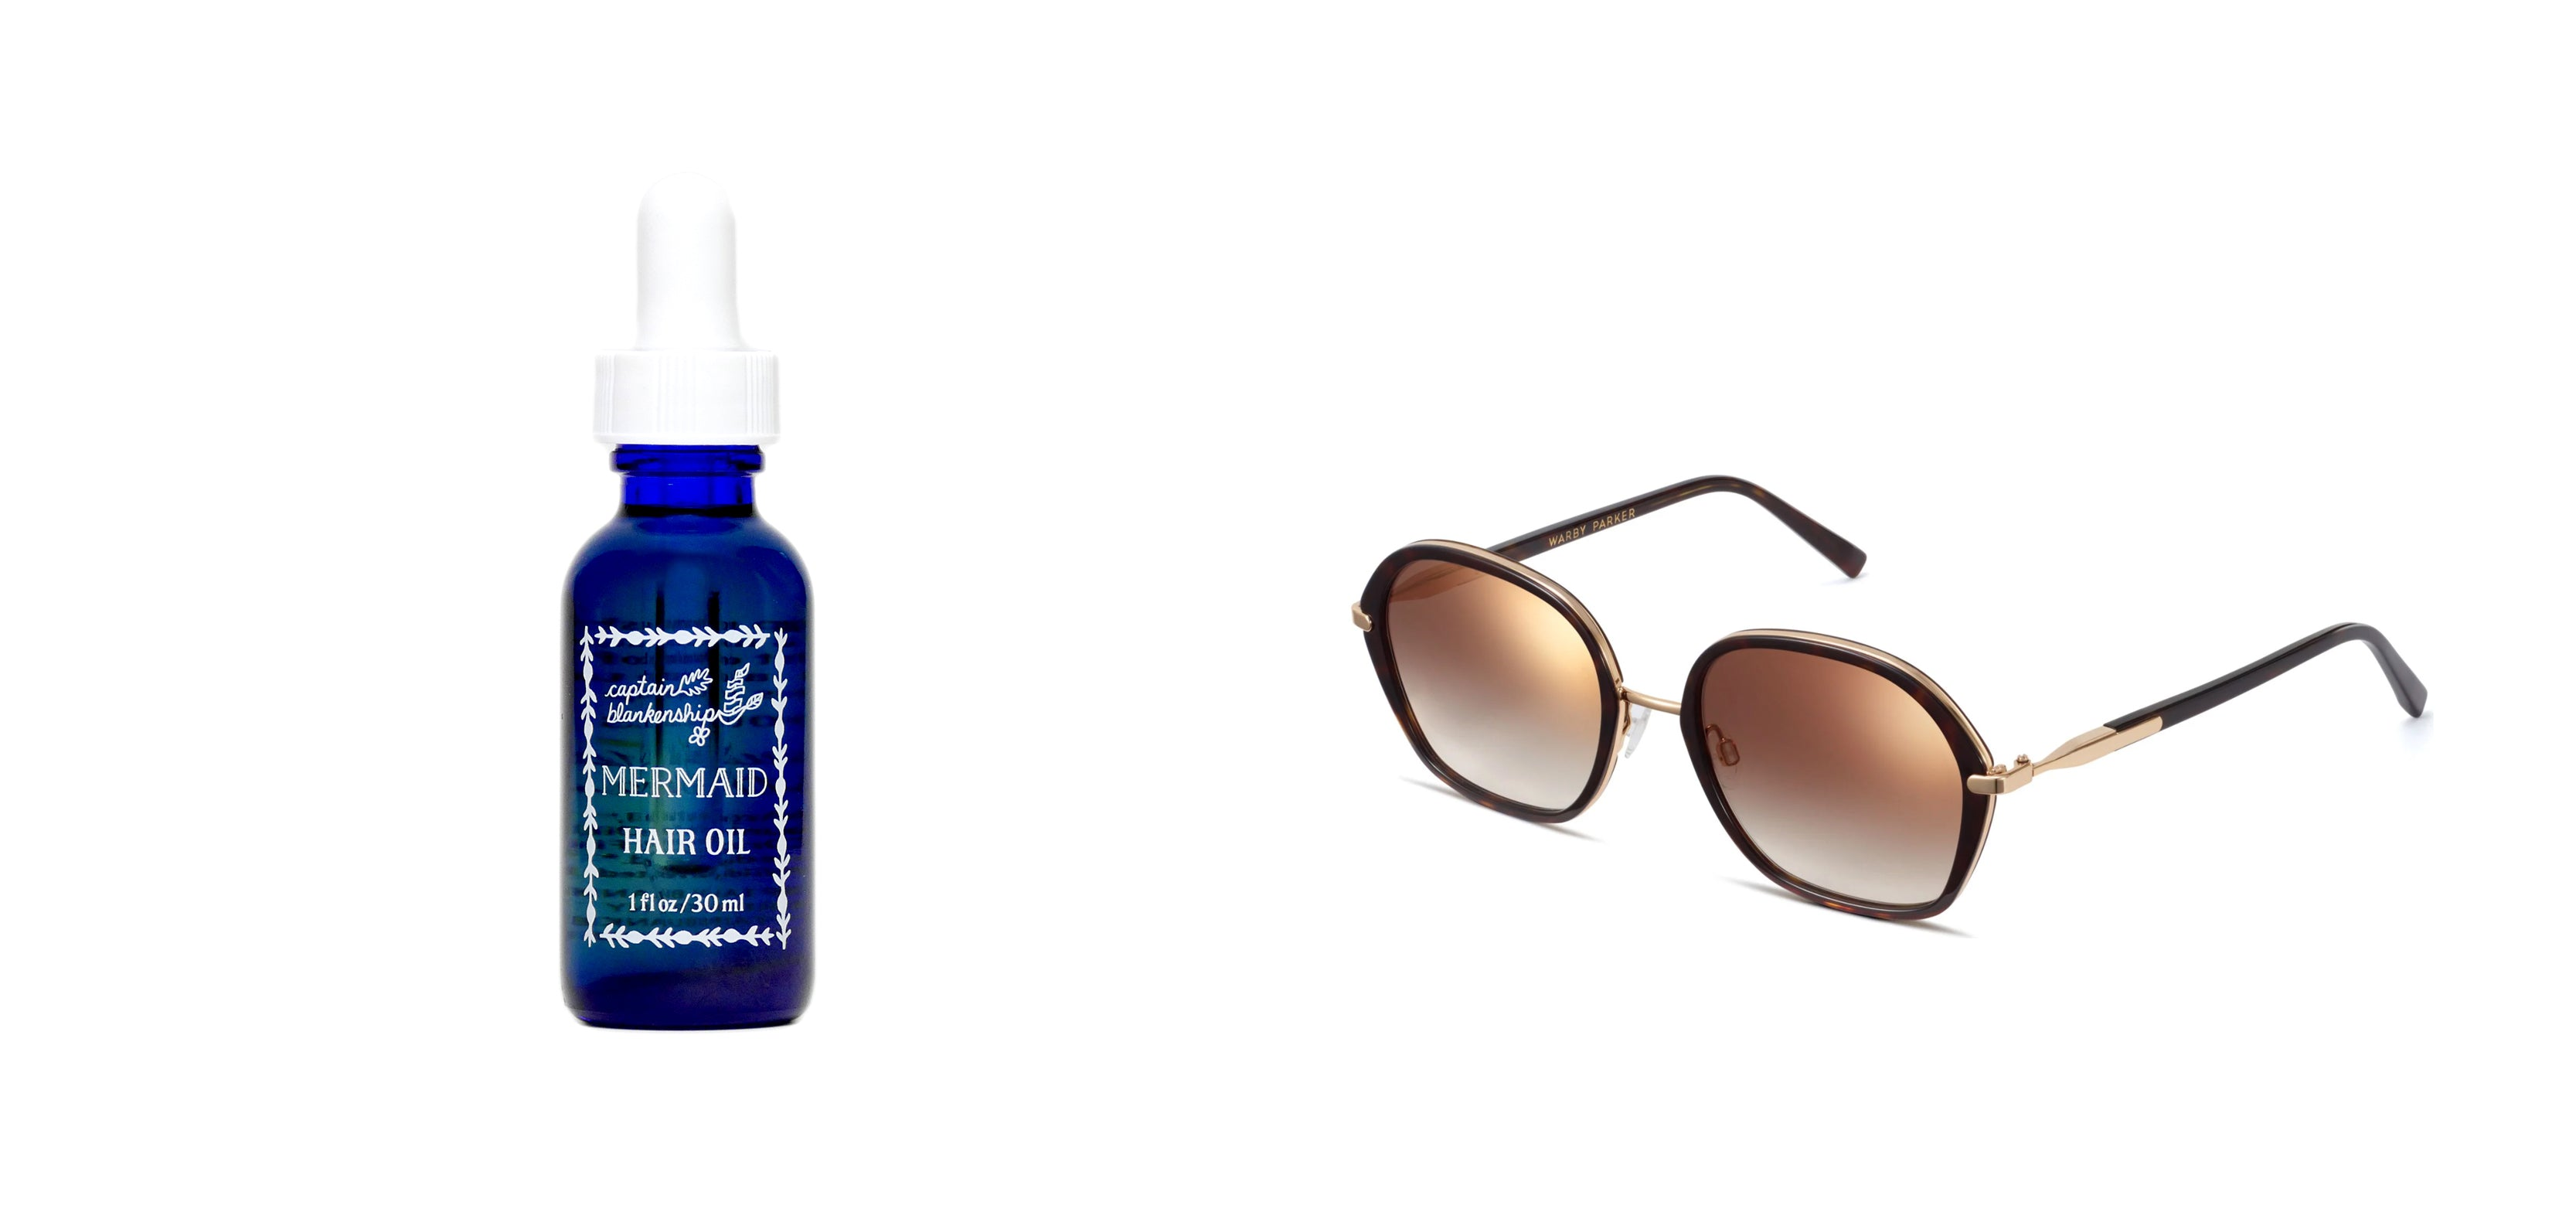 Mermaid Hair Oil, Warby Parker Sunglasses